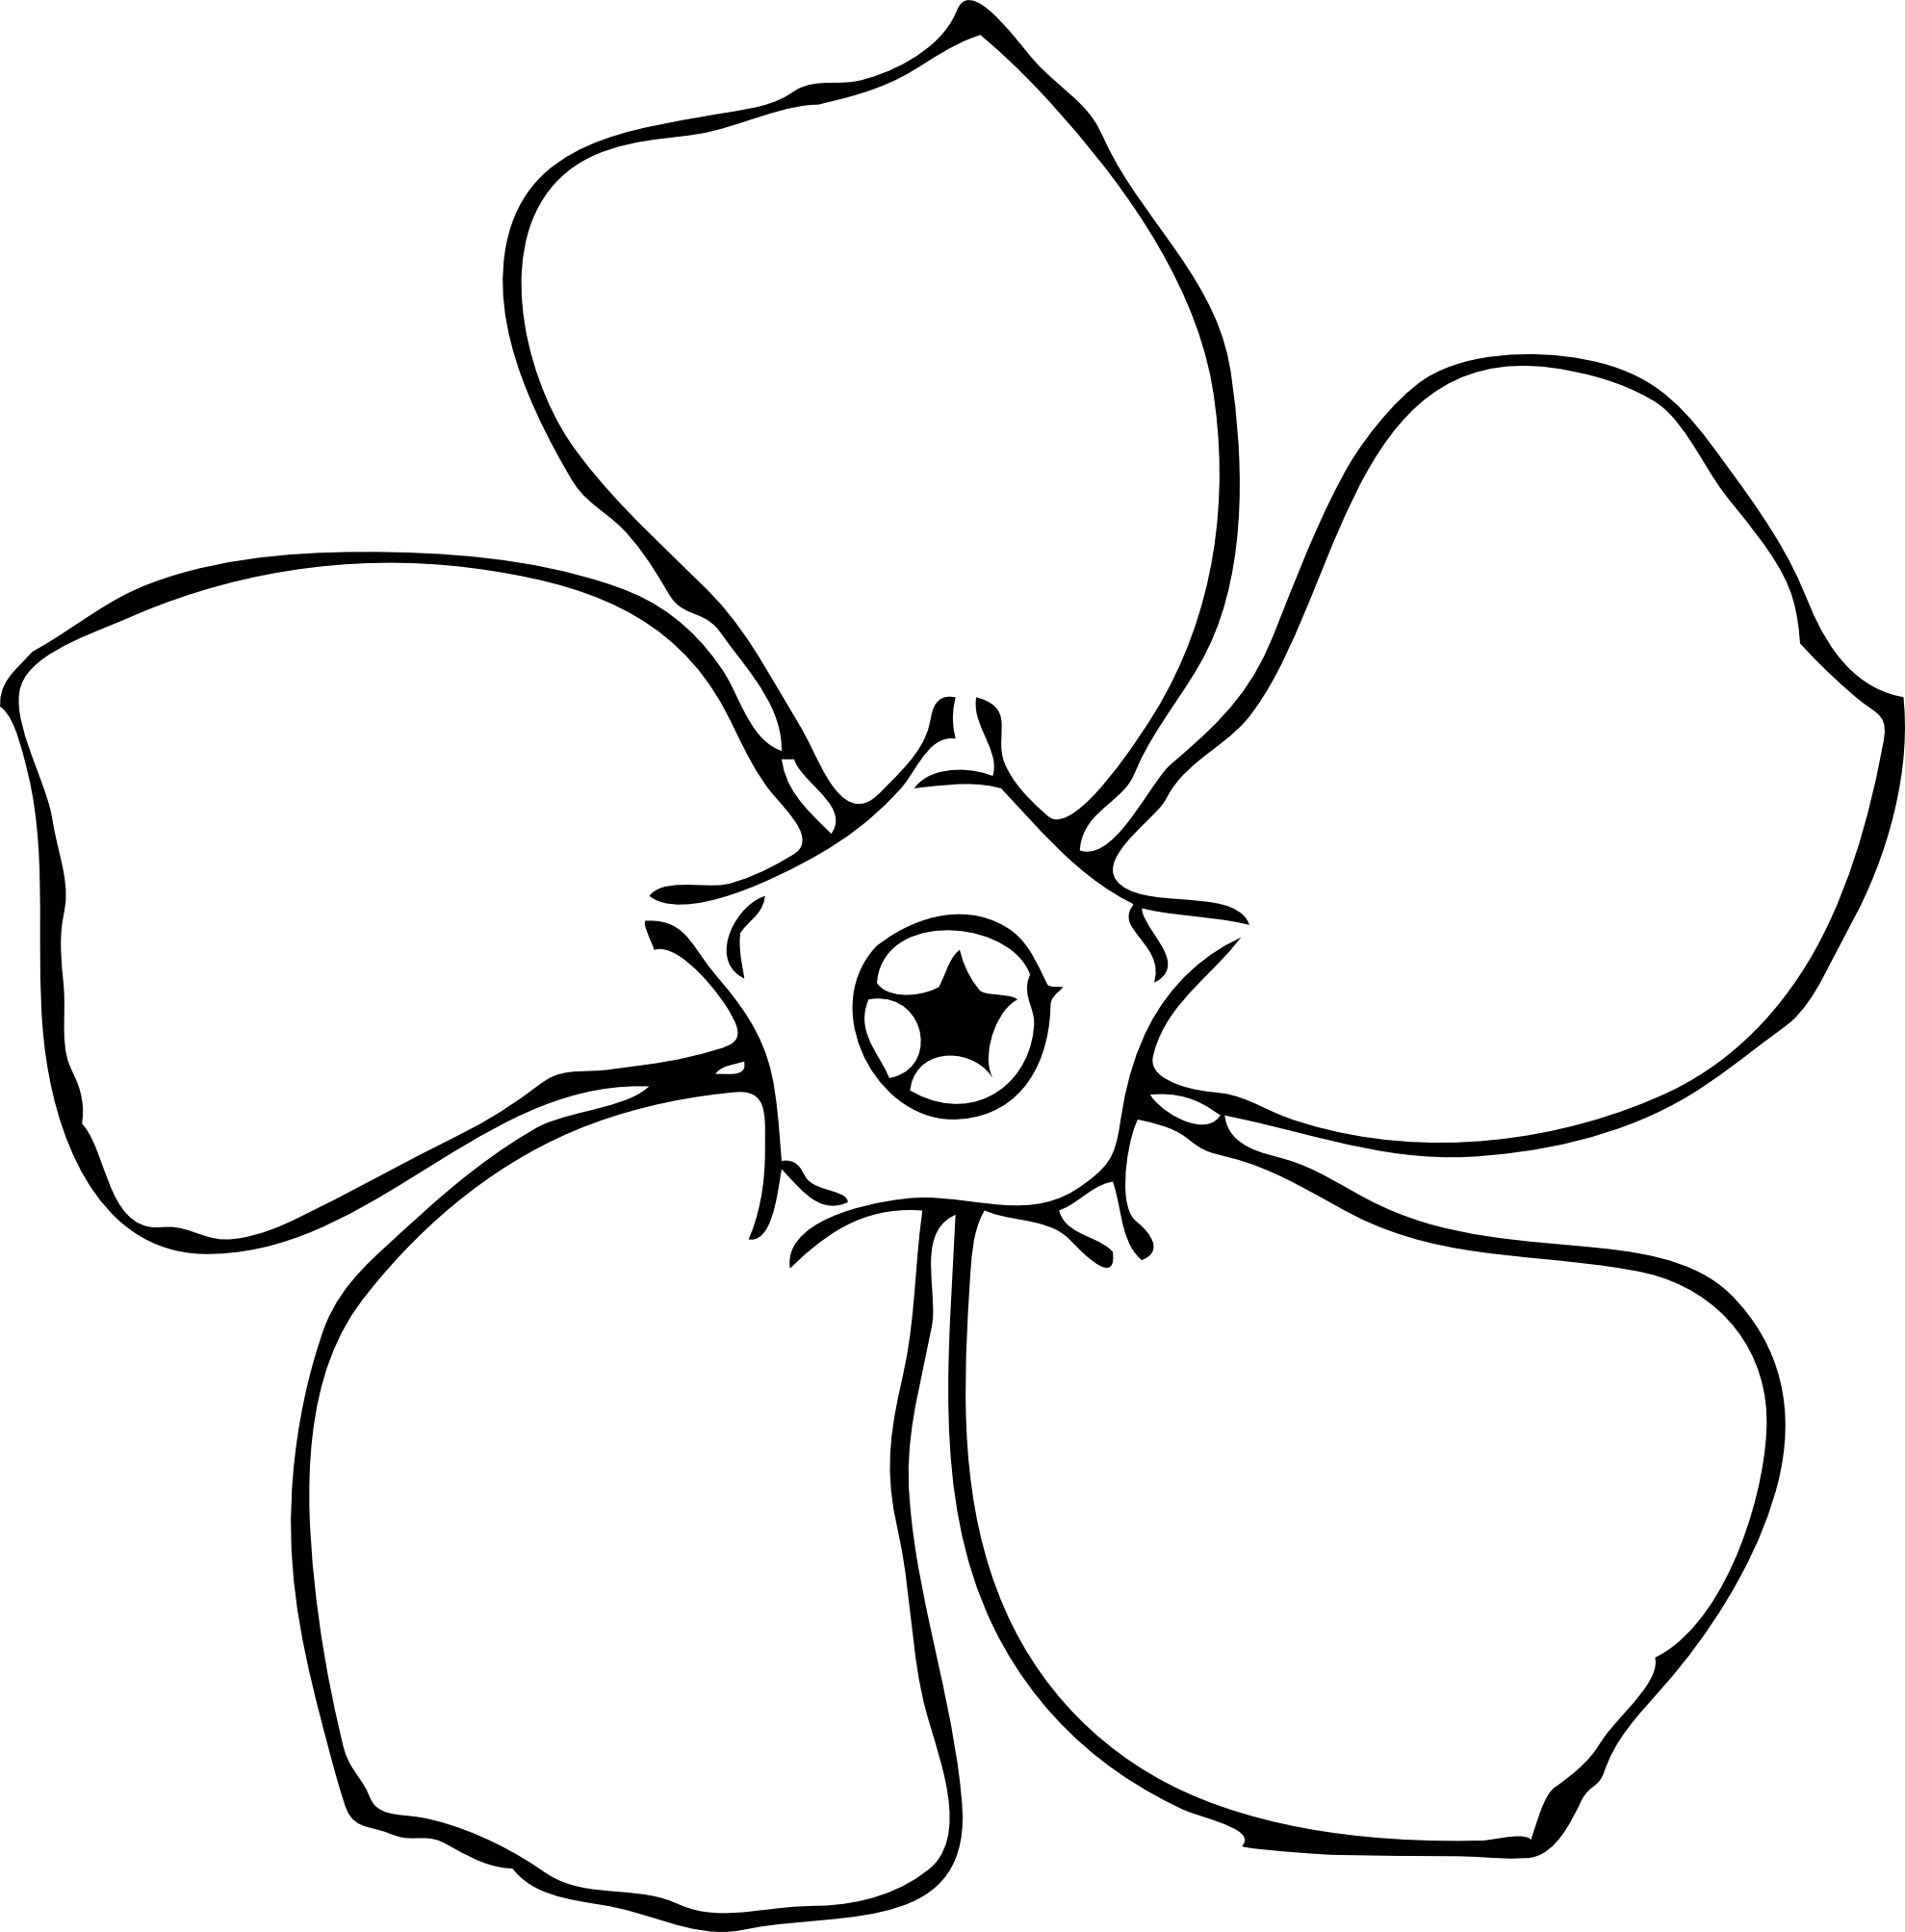 Altar flower clipart black and white graphic library download Images For > White Magnolia Flower Drawings | Fun Time Activities ... graphic library download